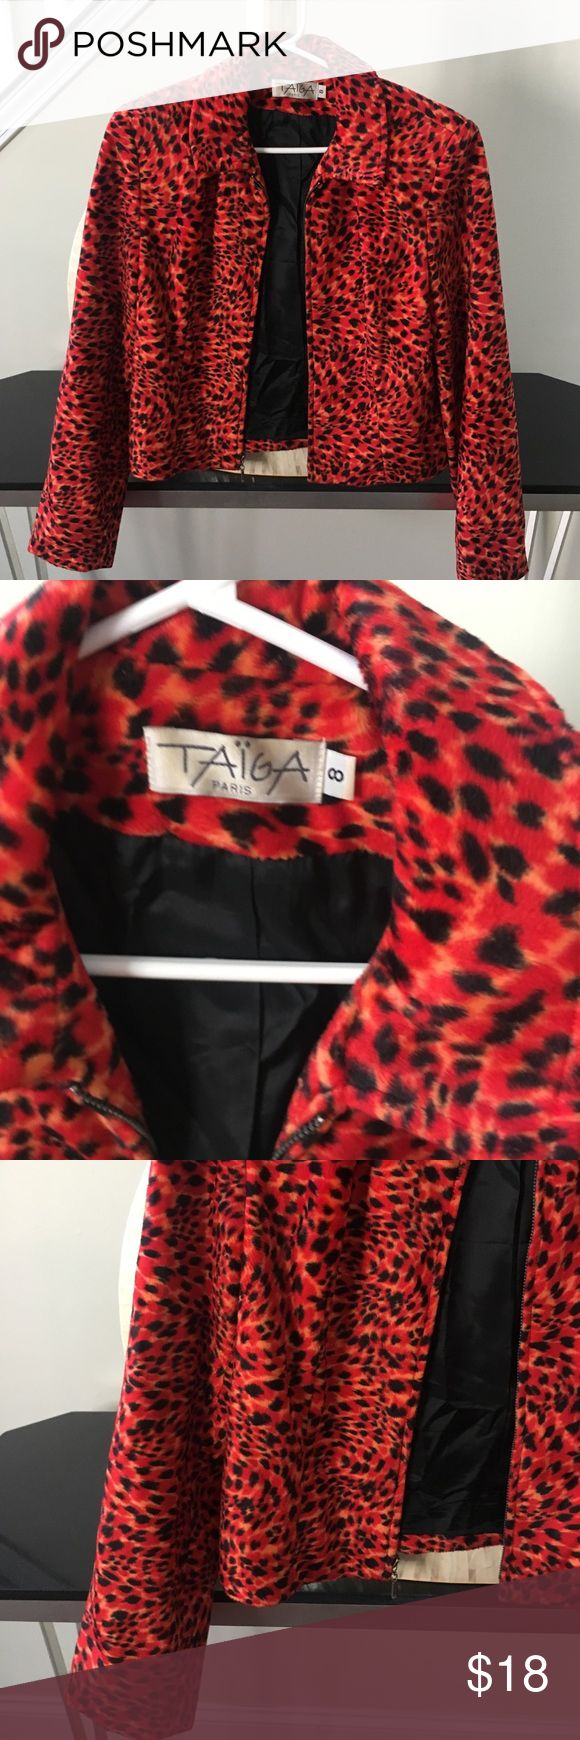 Red animal print zip up jacket In very good used condition with no rips or stains. Adorable leopard print zip up jacket with black lining. Thanks for looking and make an offer.💕 Taiga Jackets & Coats Utility Jackets